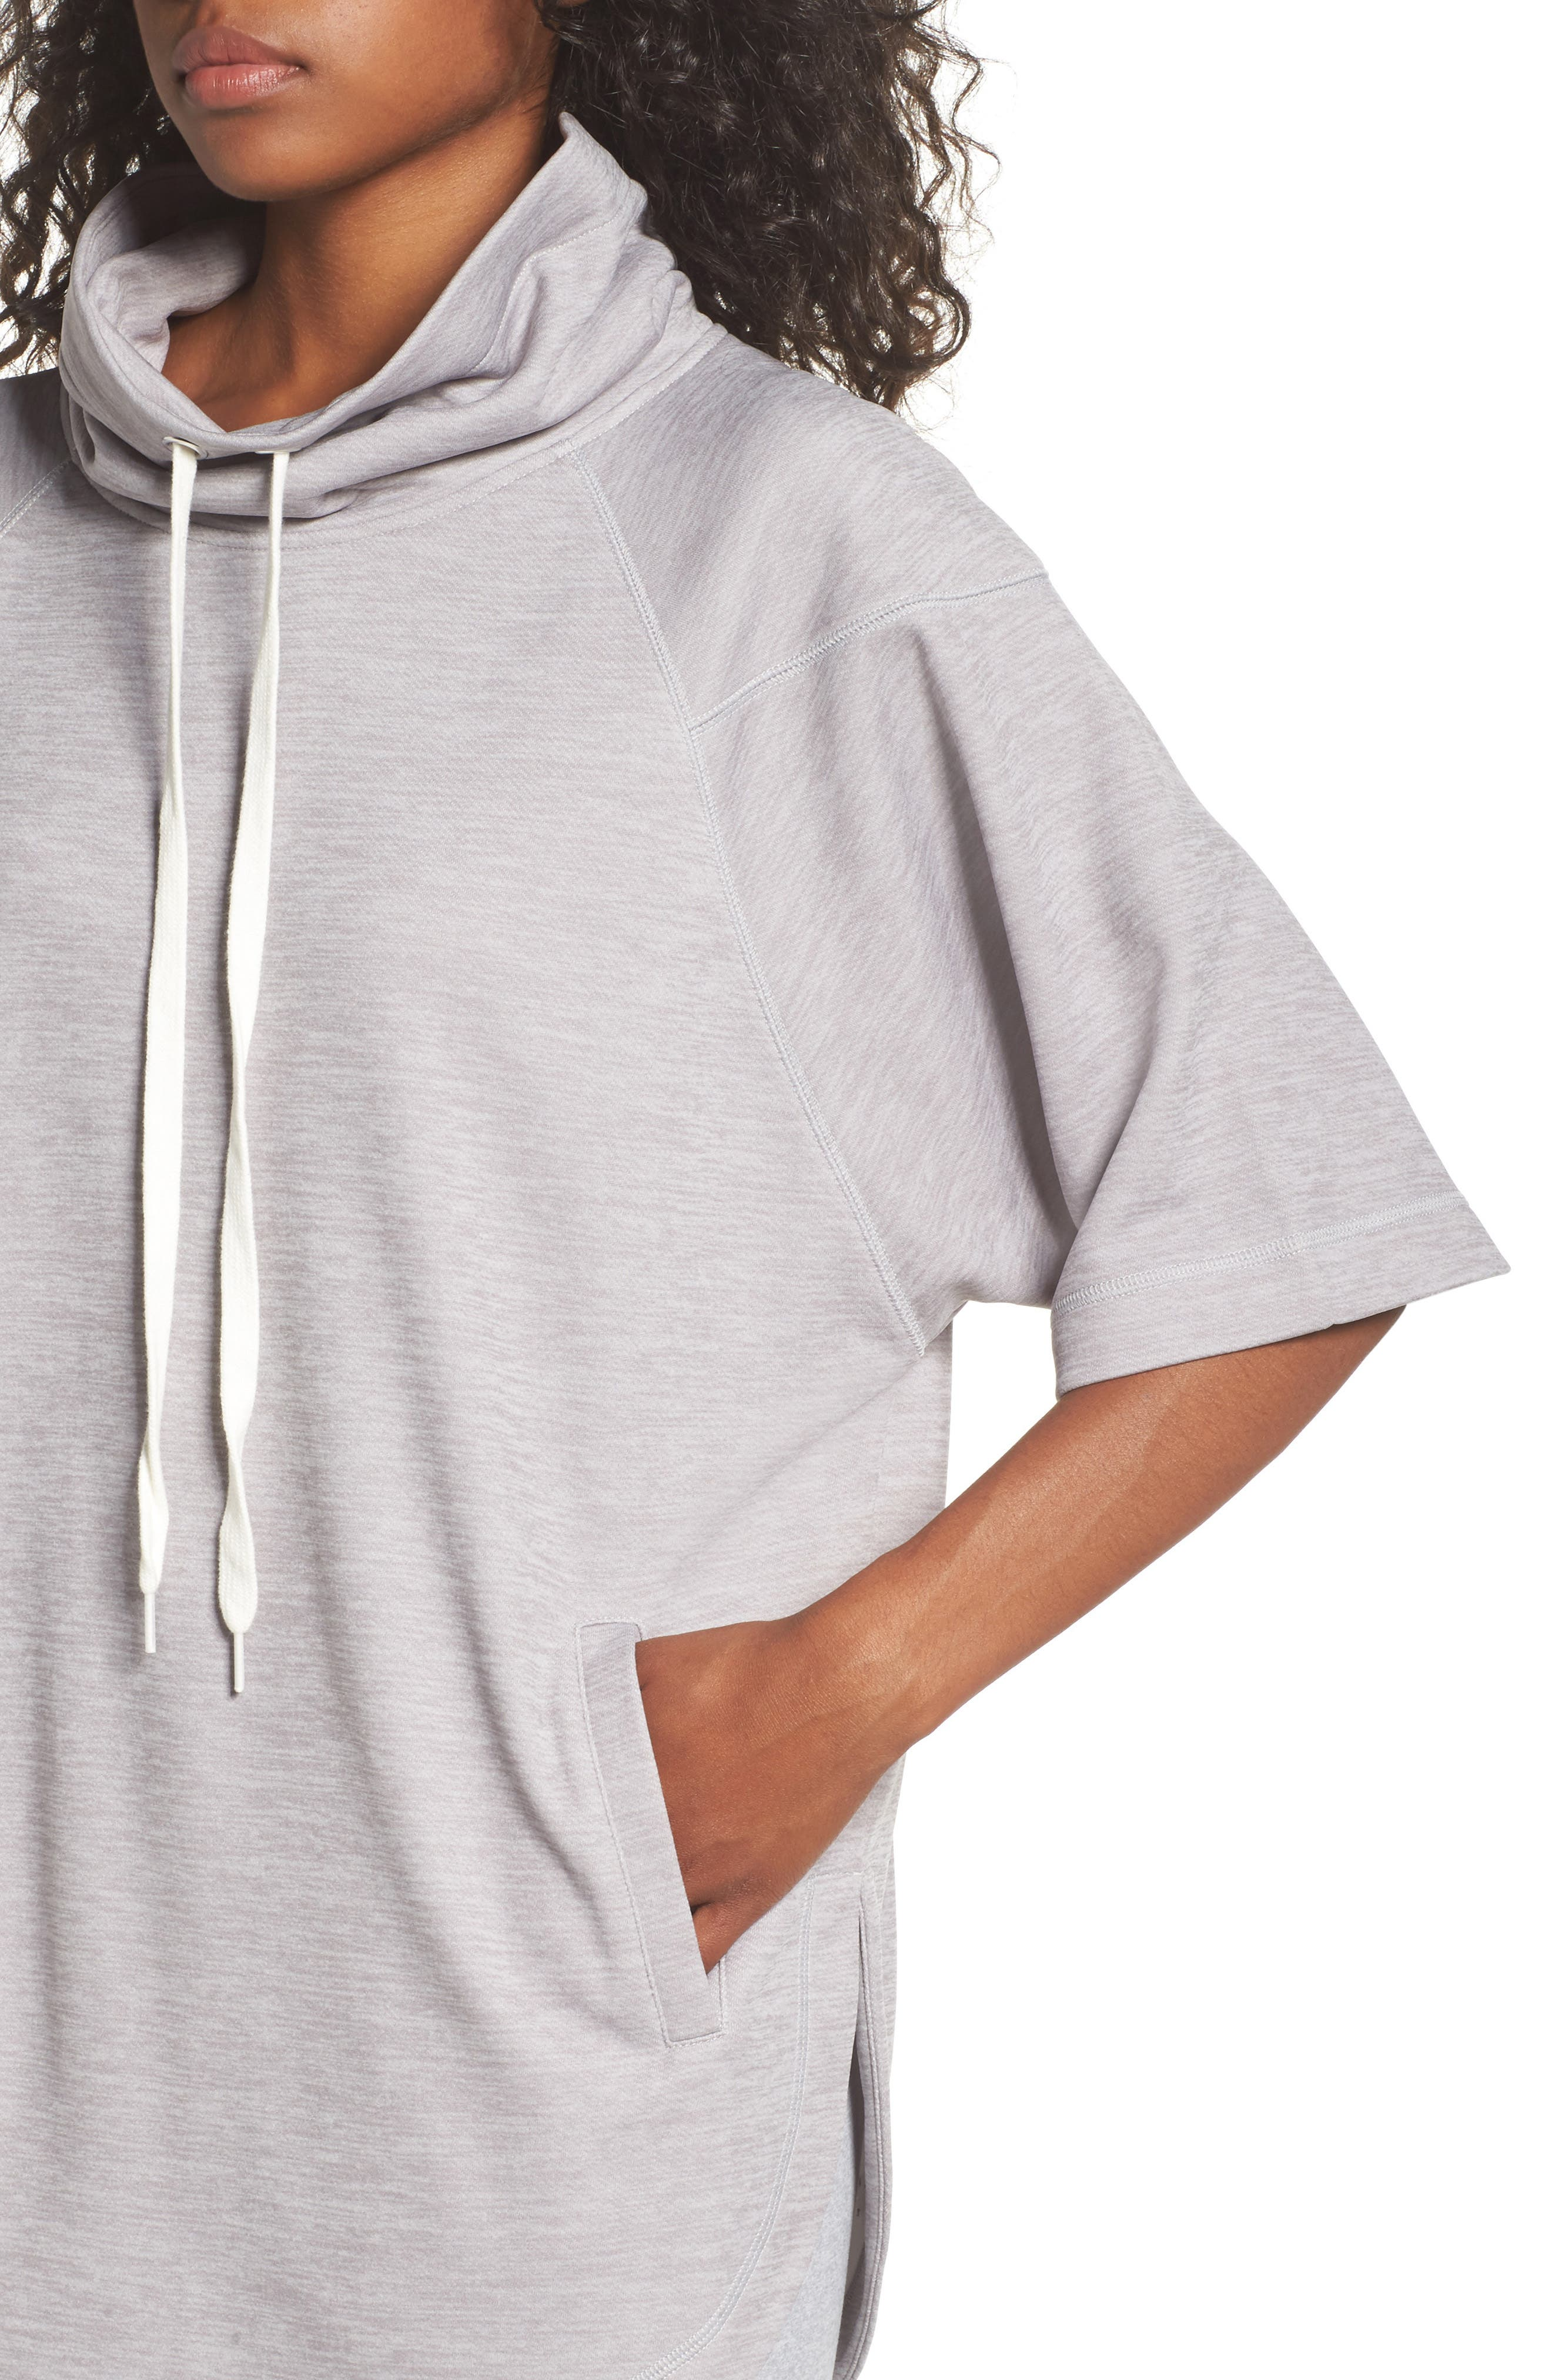 Get It Girl Pullover,                             Alternate thumbnail 9, color,